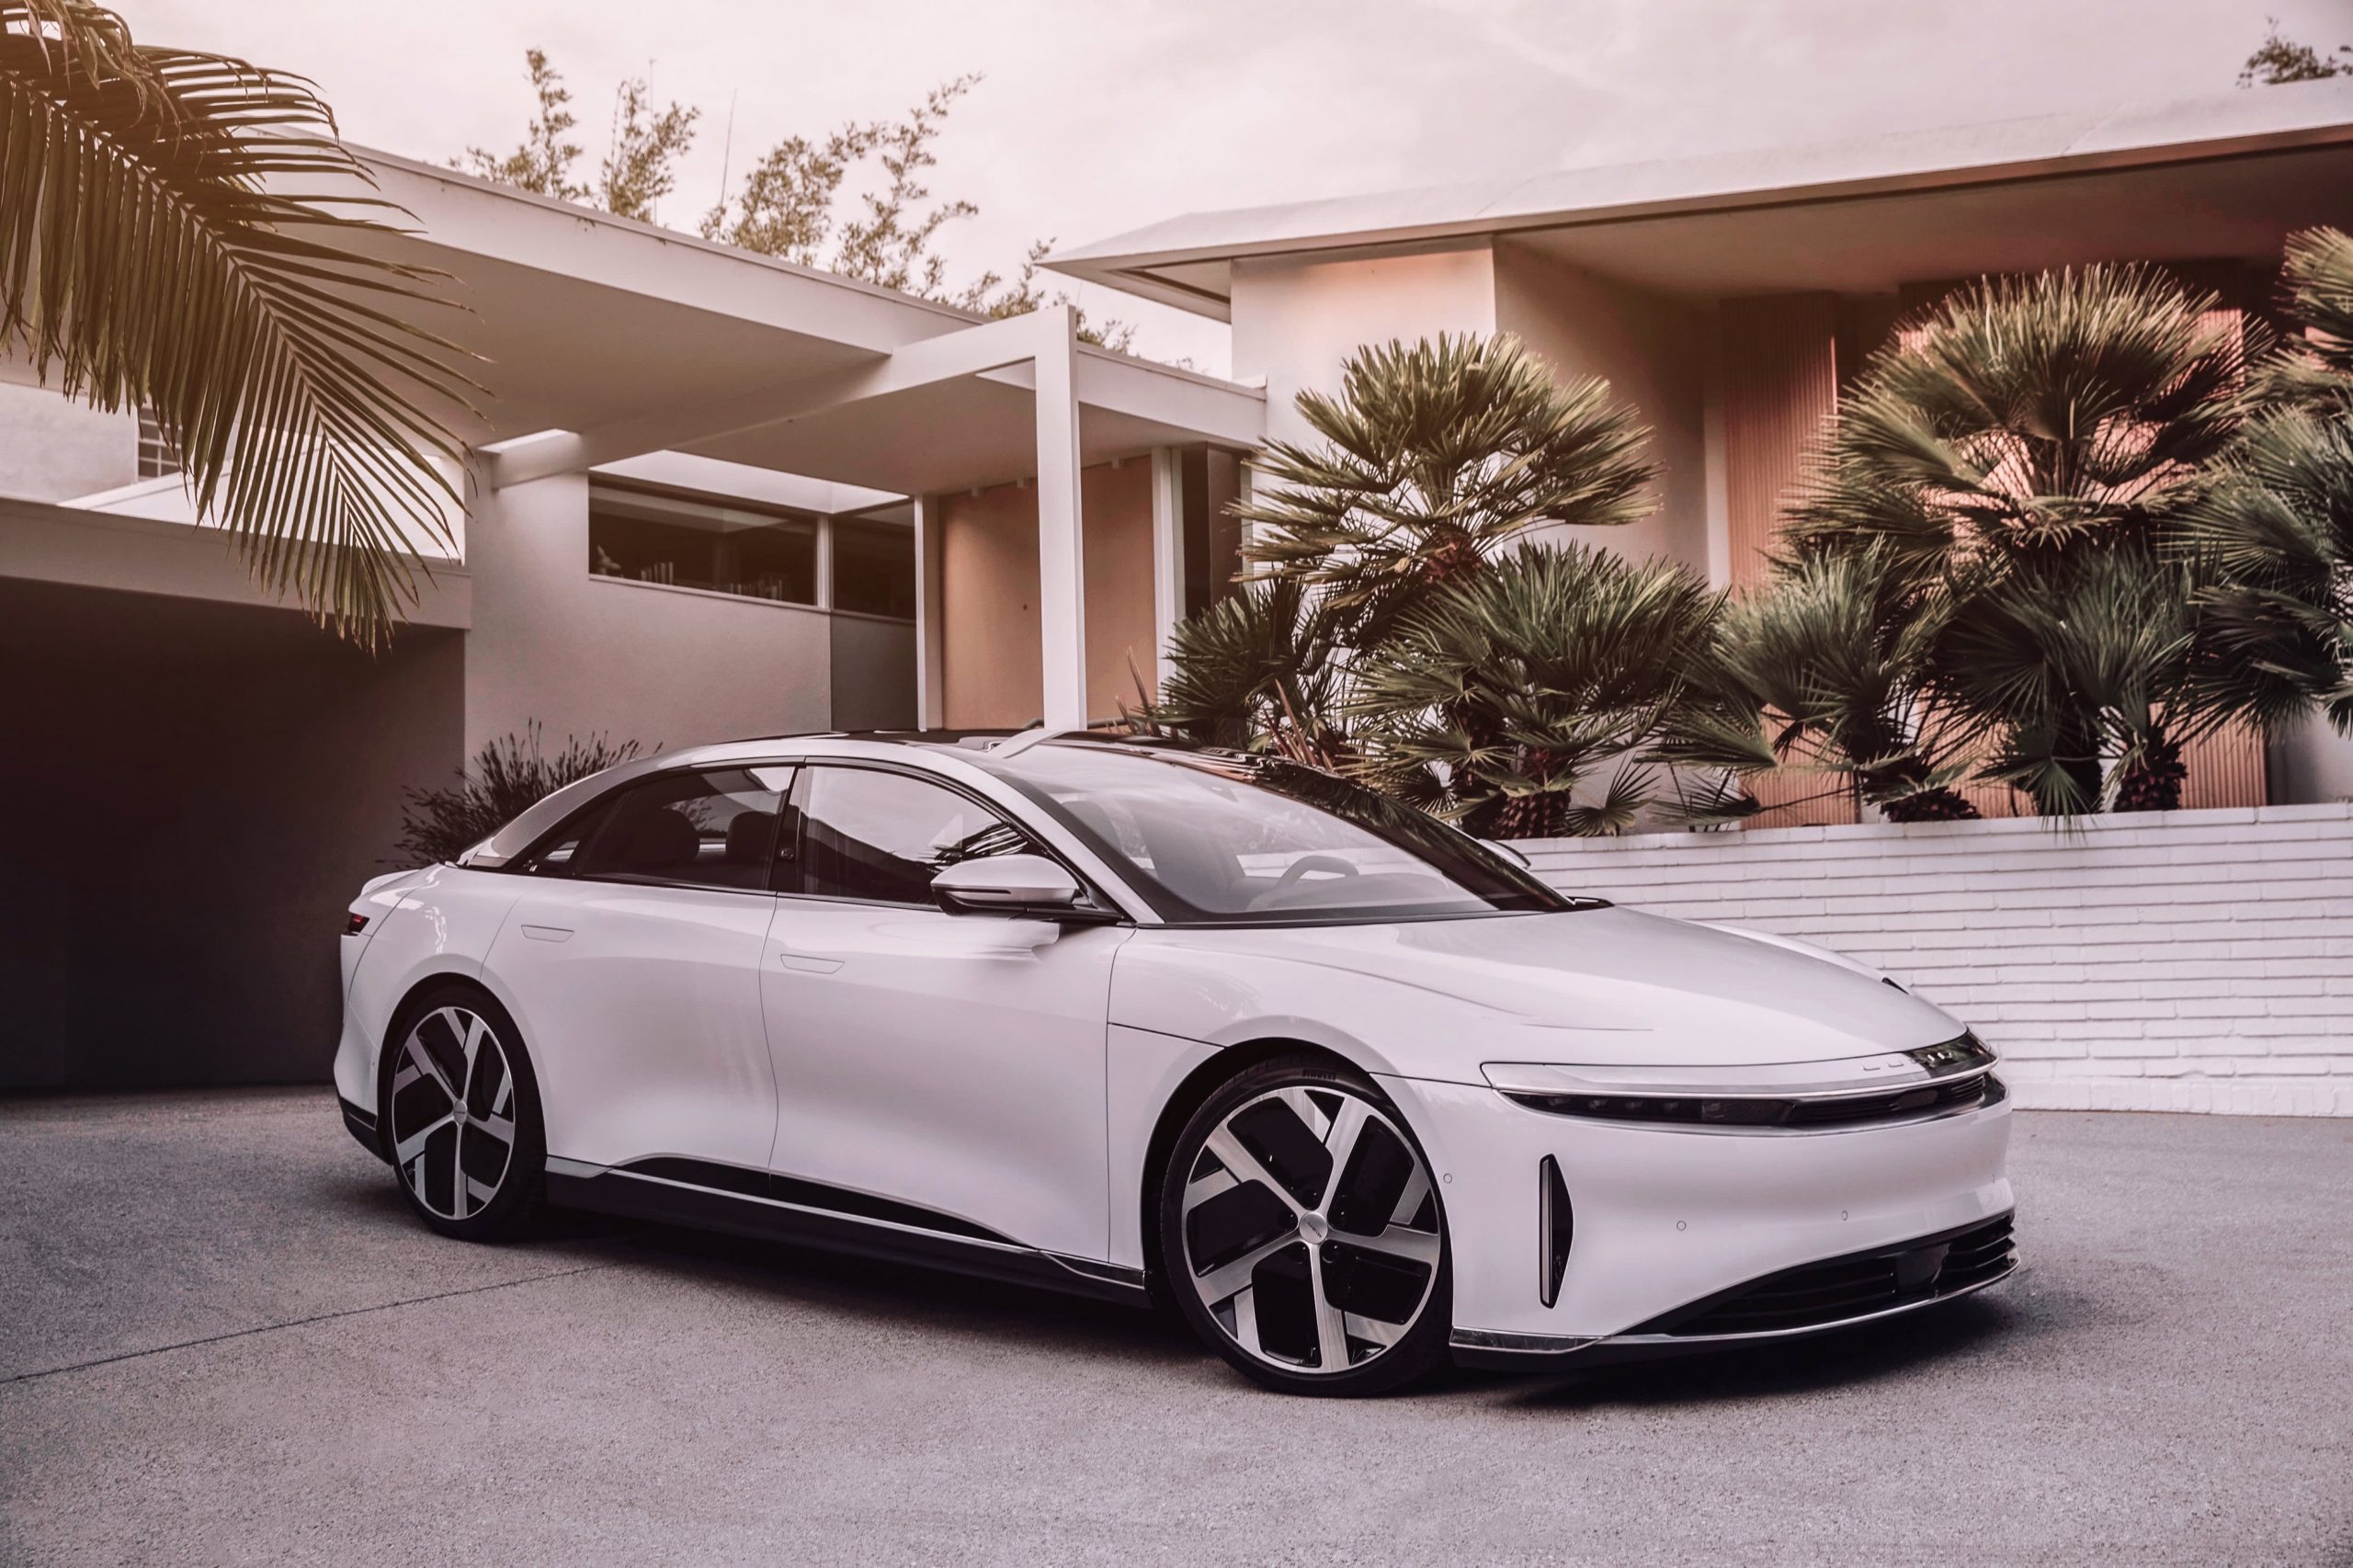 electric-vehicle-firm-lucid-motors-to-go-public-in-11-8-billion-blank-check-merger